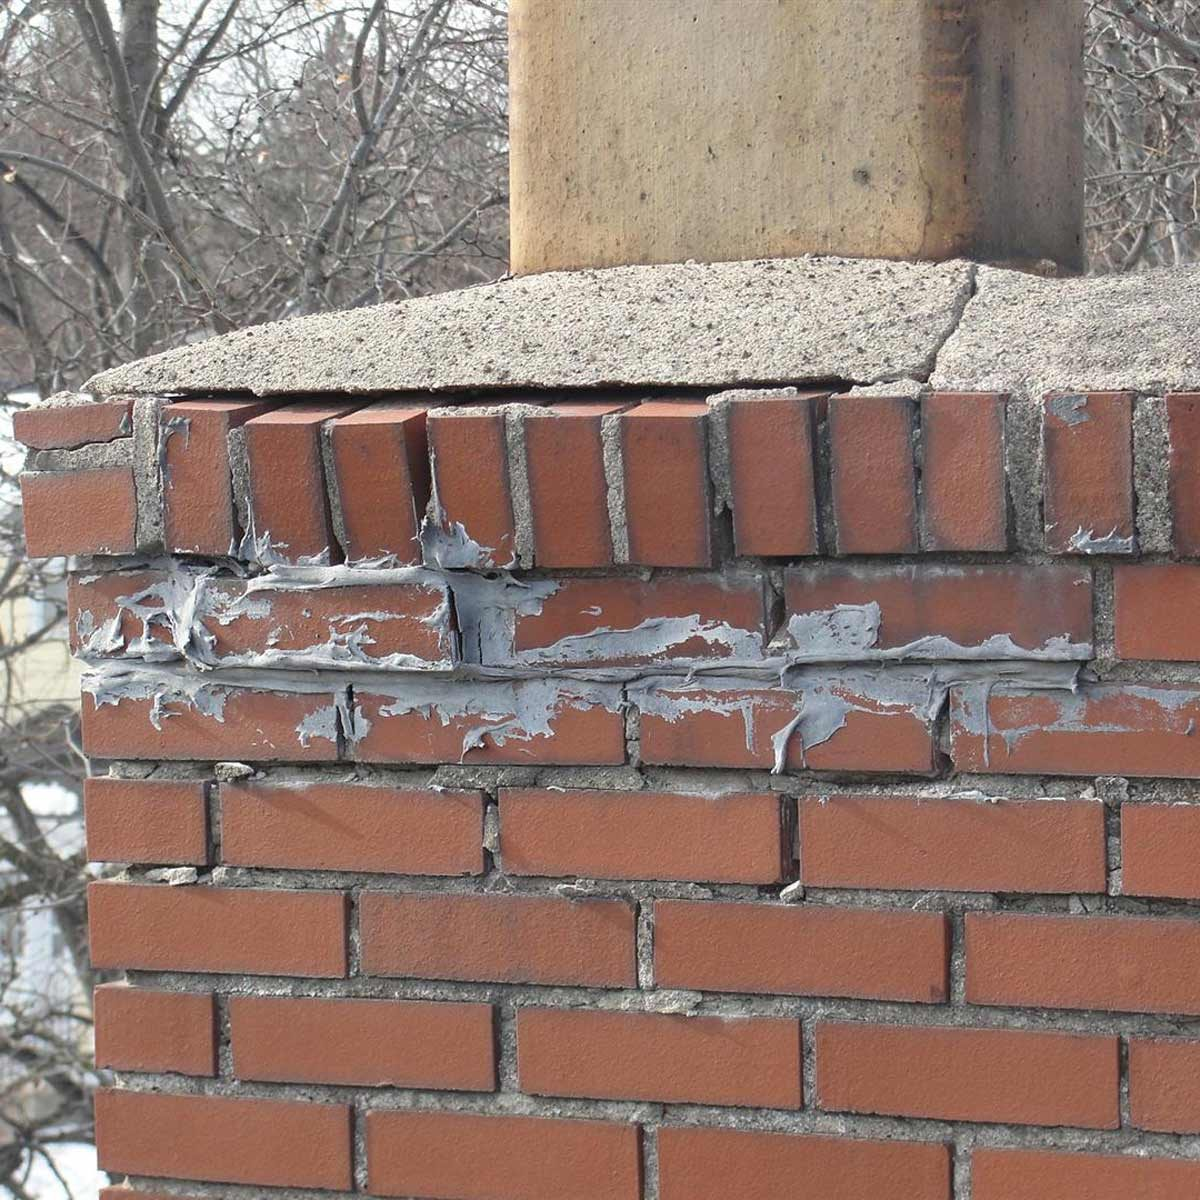 Brick Work Gone Bad